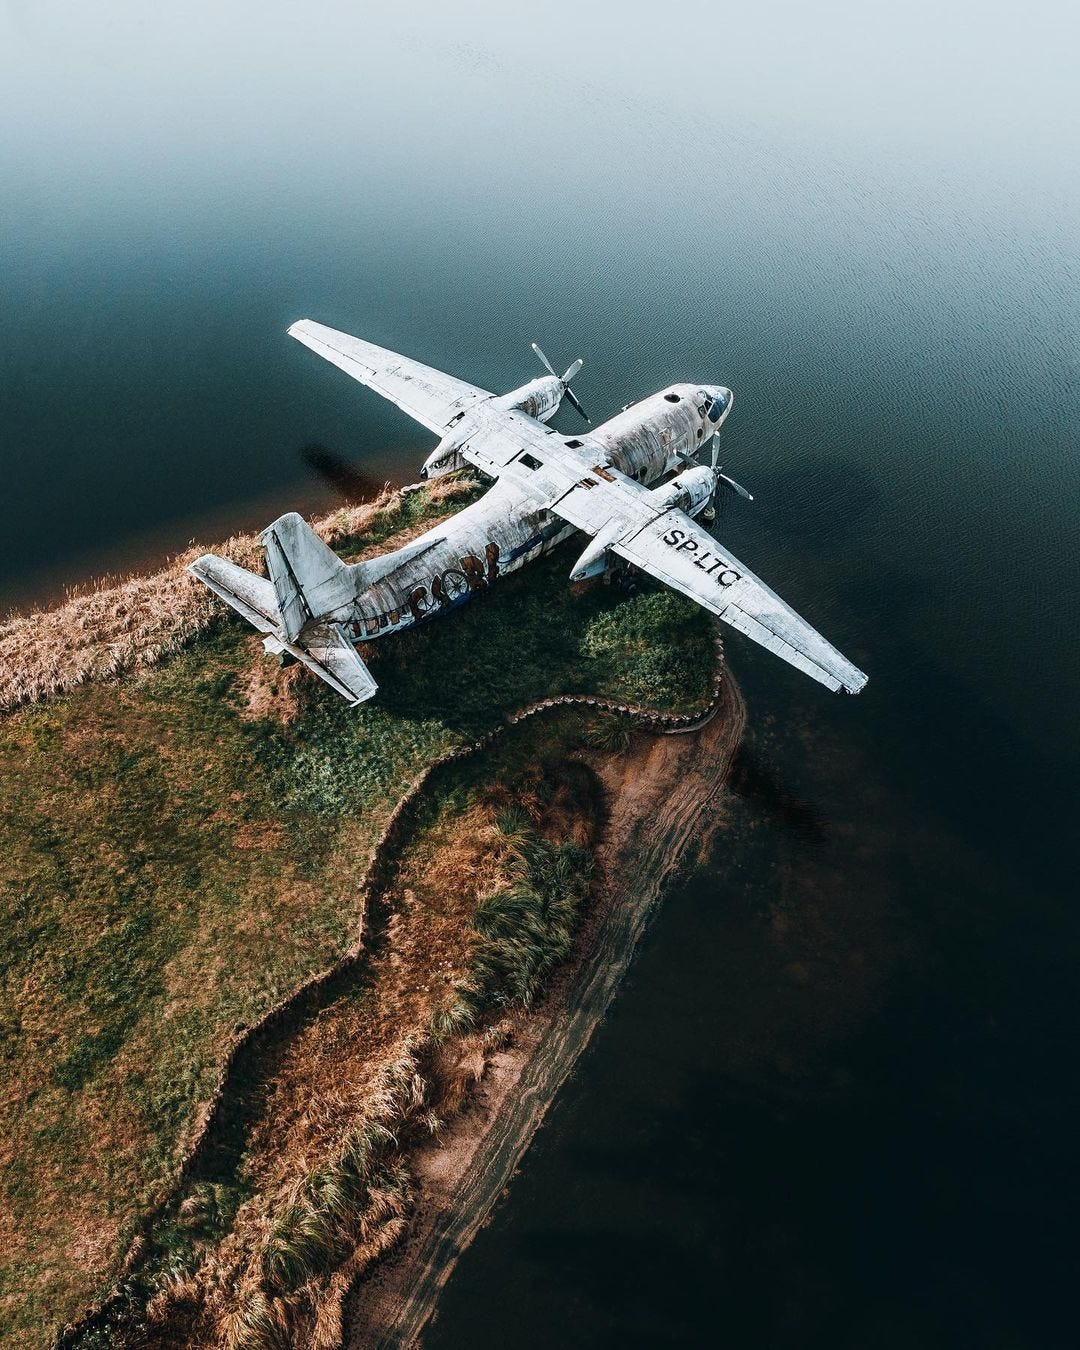 Plane landed on edge of a cliff